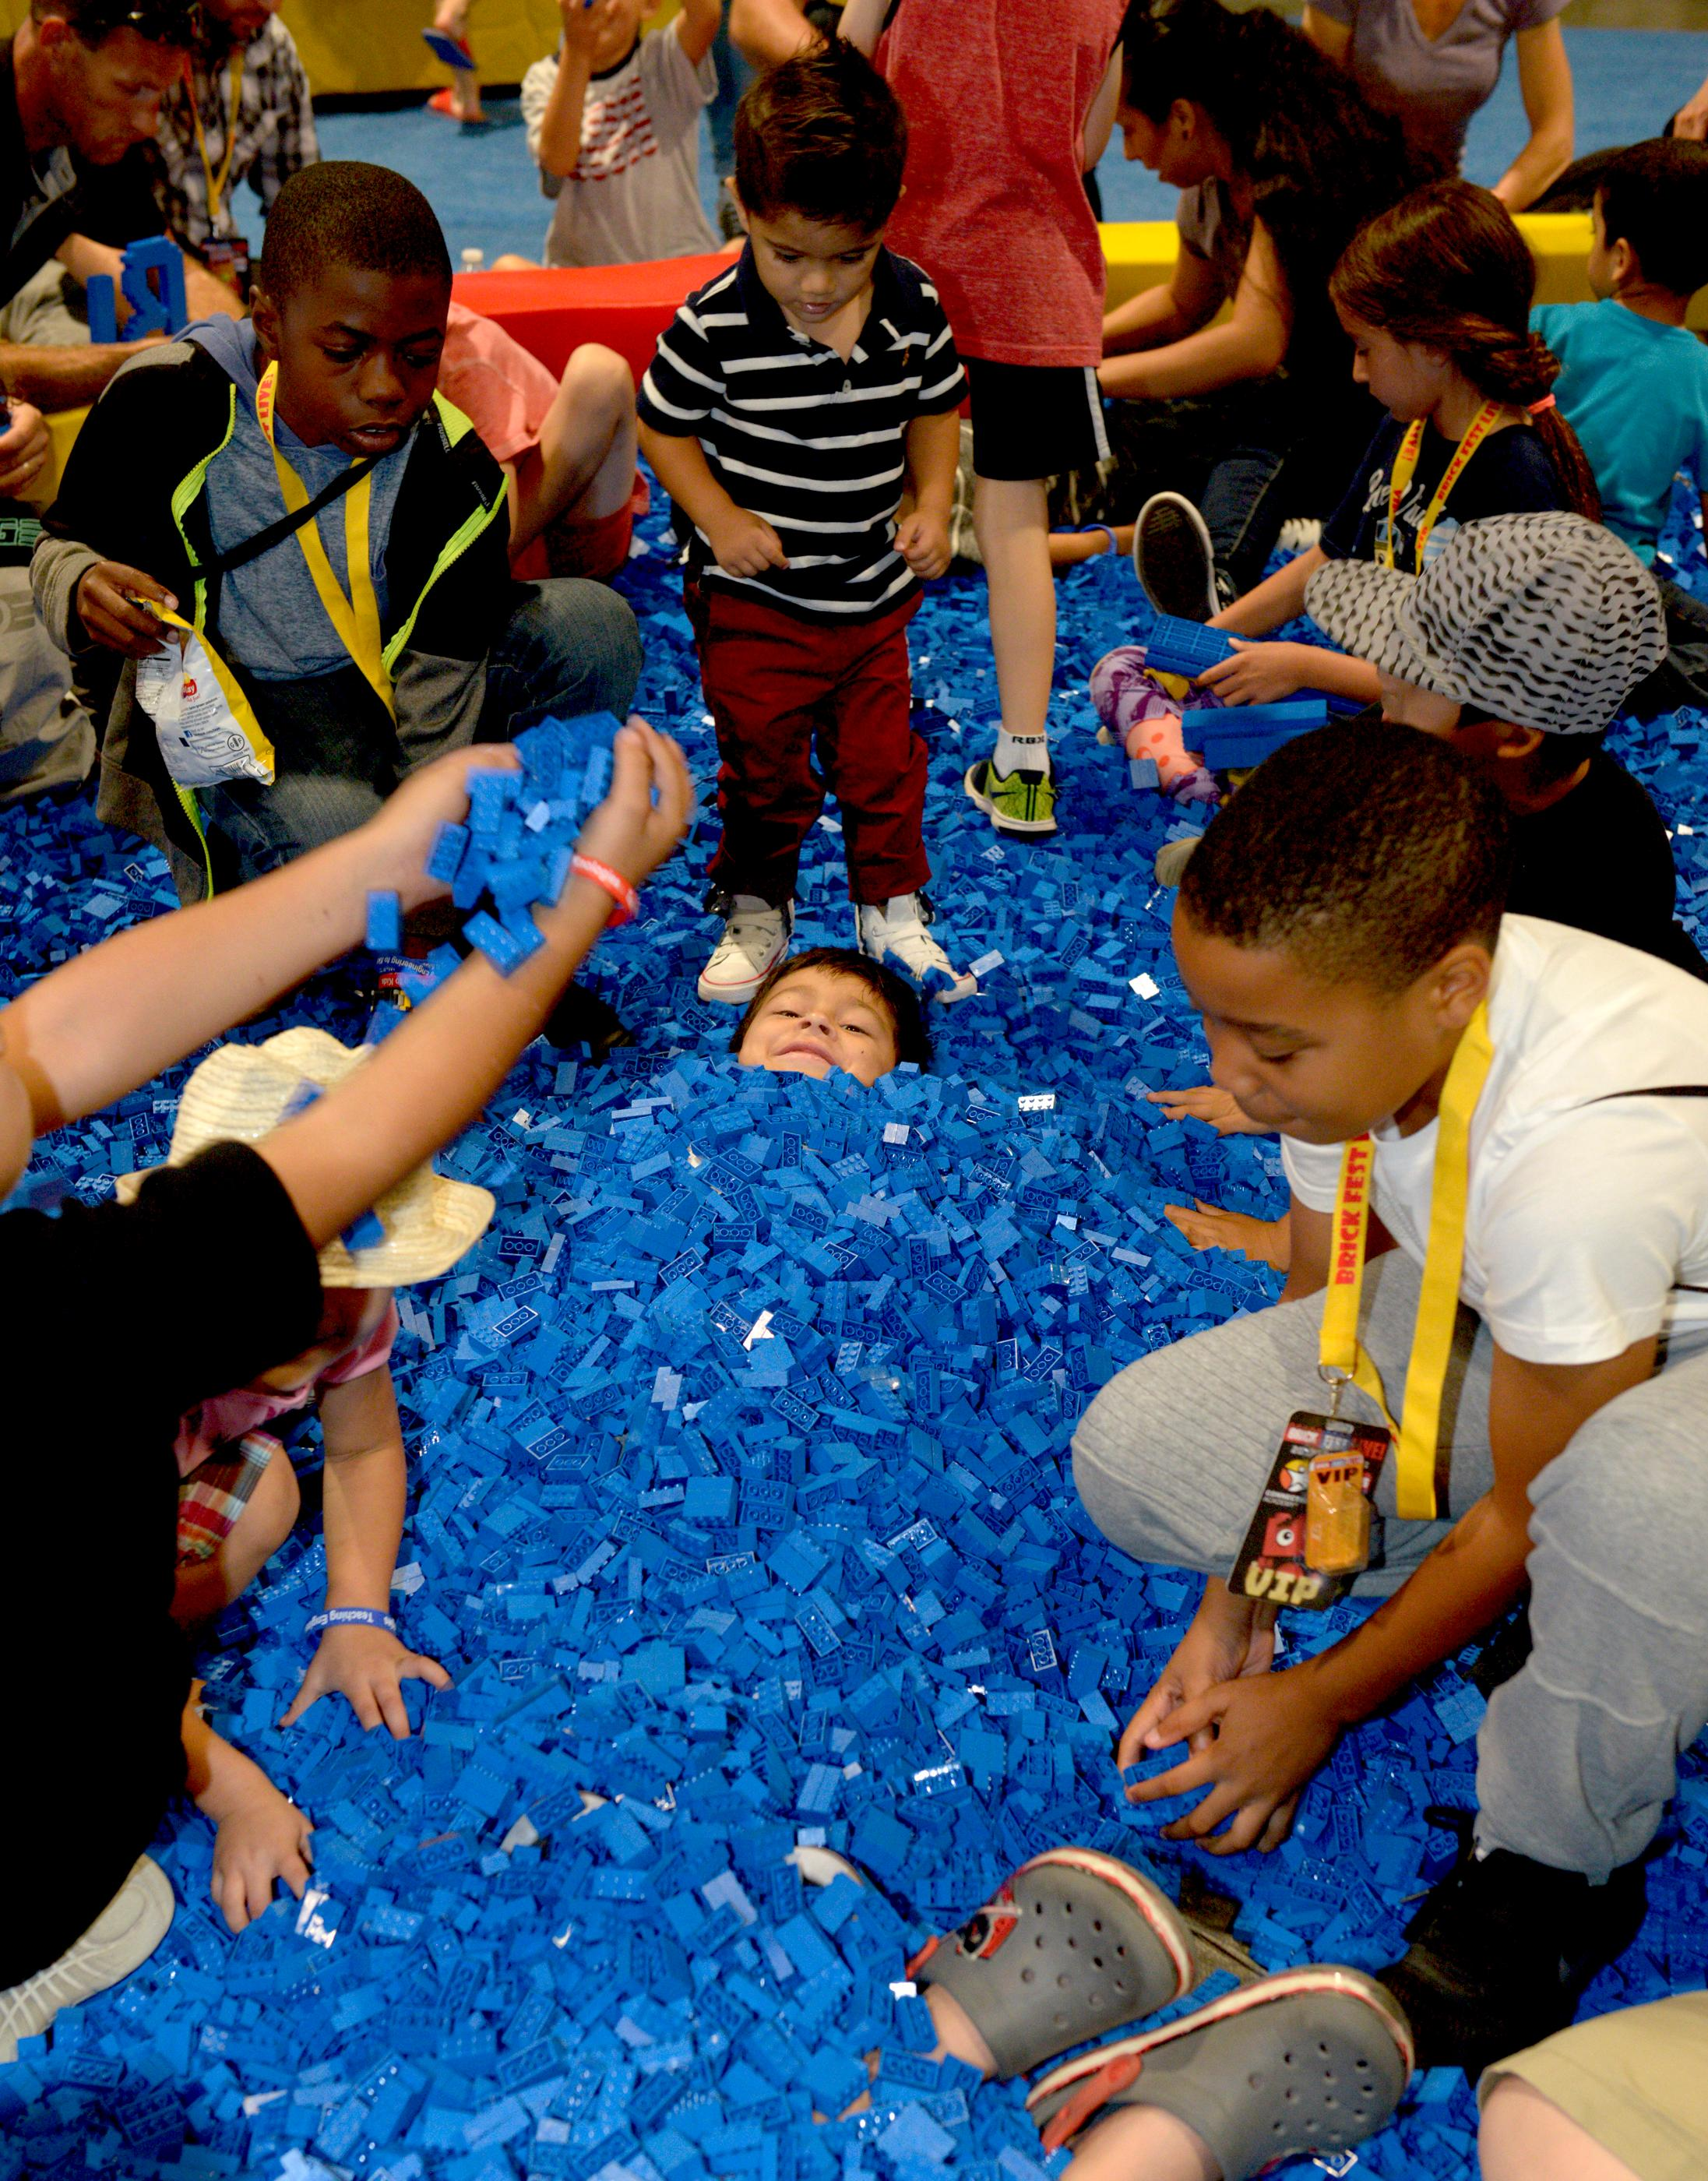 One young fan is buried up to his head in the Lego Sand Box during the Brick Fest Live Lego Fan Experience at the Las Vegas Convention Center, September 9, 2017. [Glenn Pinkerton/Las Vegas News Bureau]